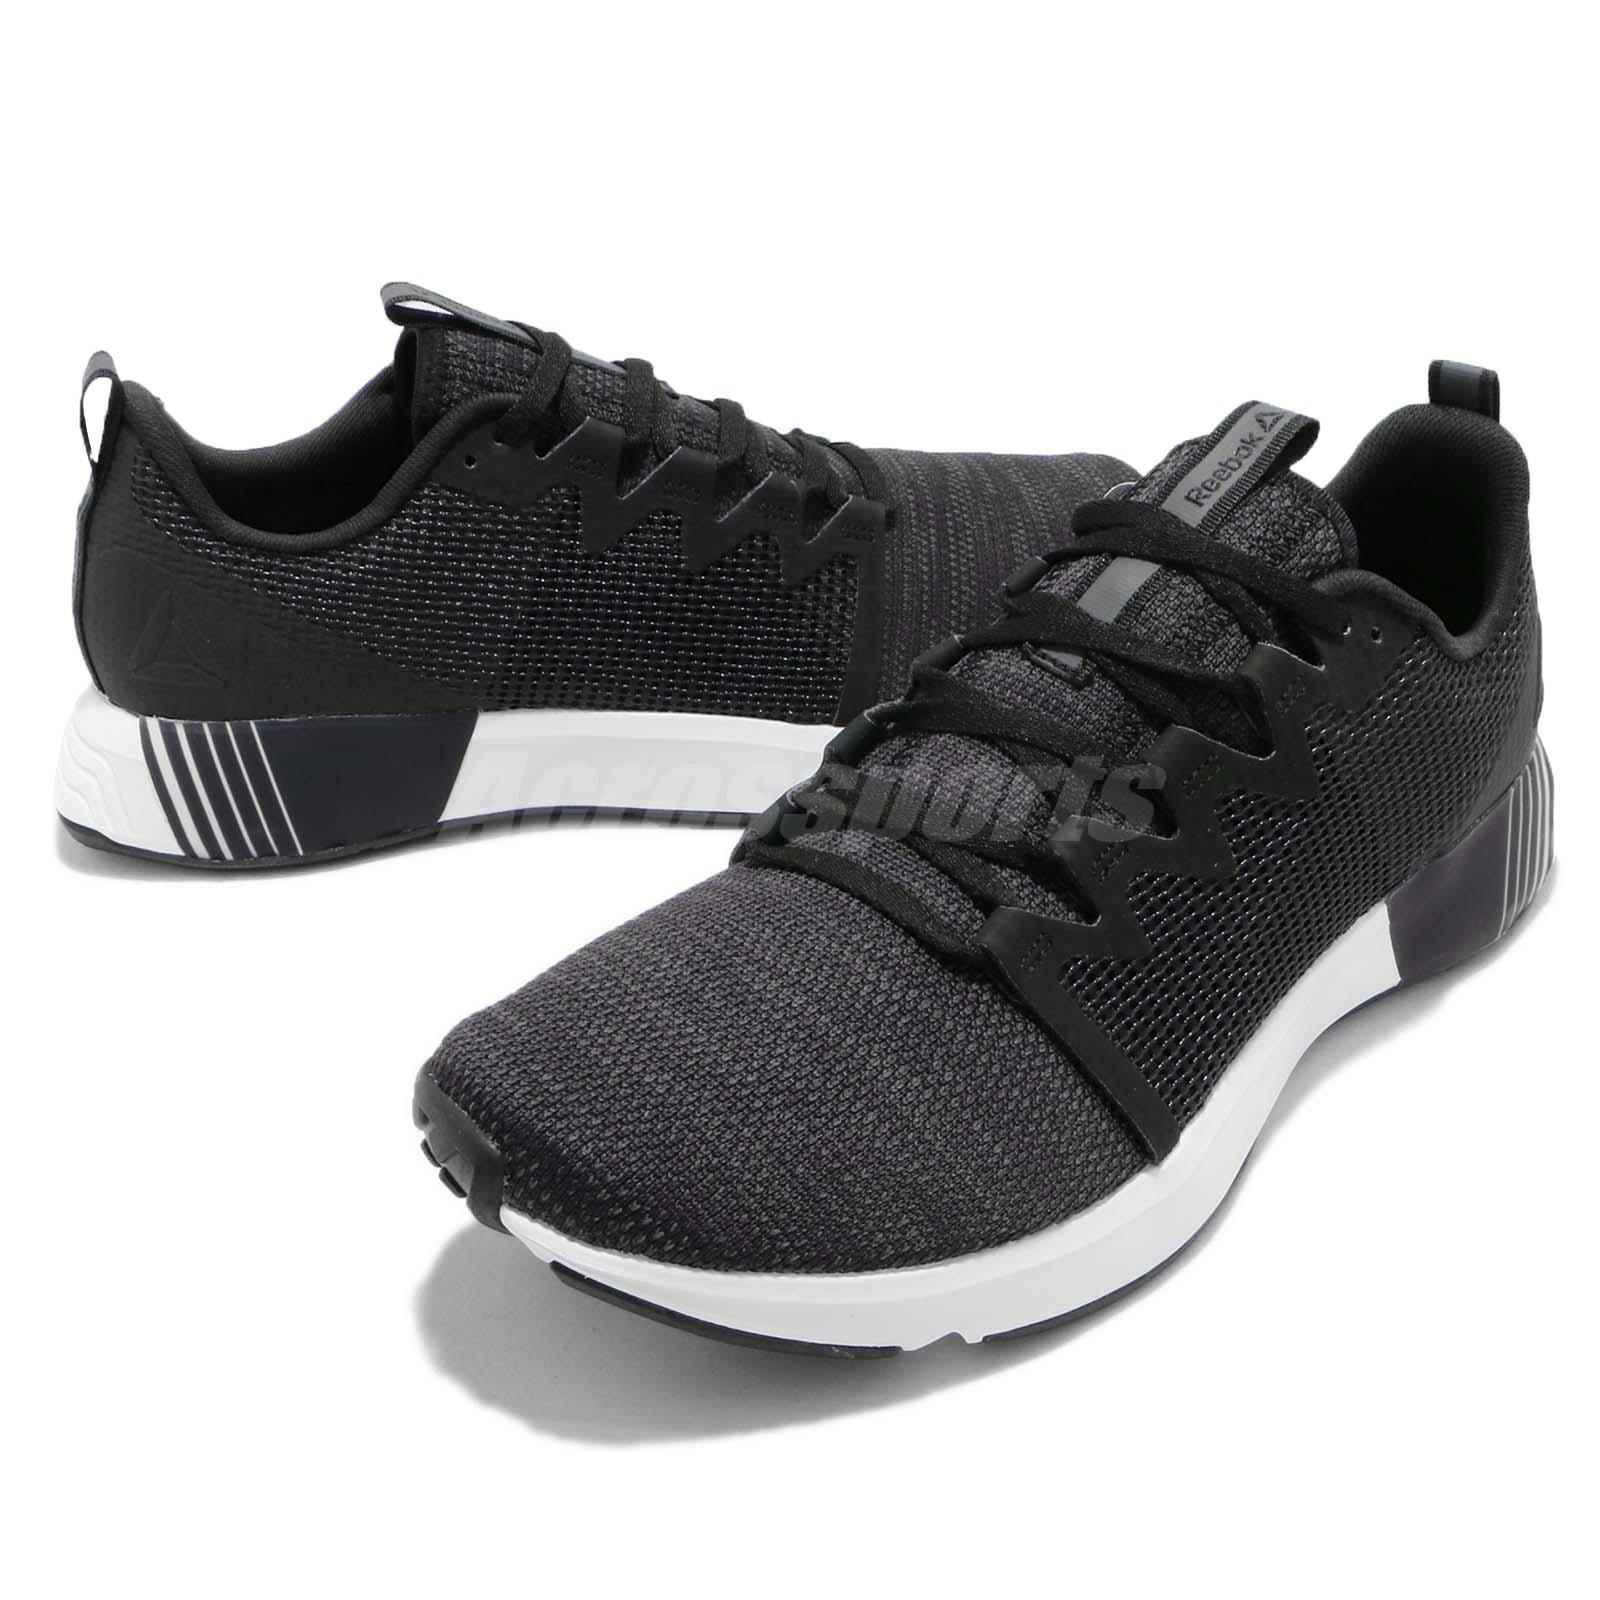 e8c587403302 Reebok Fusium Run Black Grey White Men Running Training Shoes ...